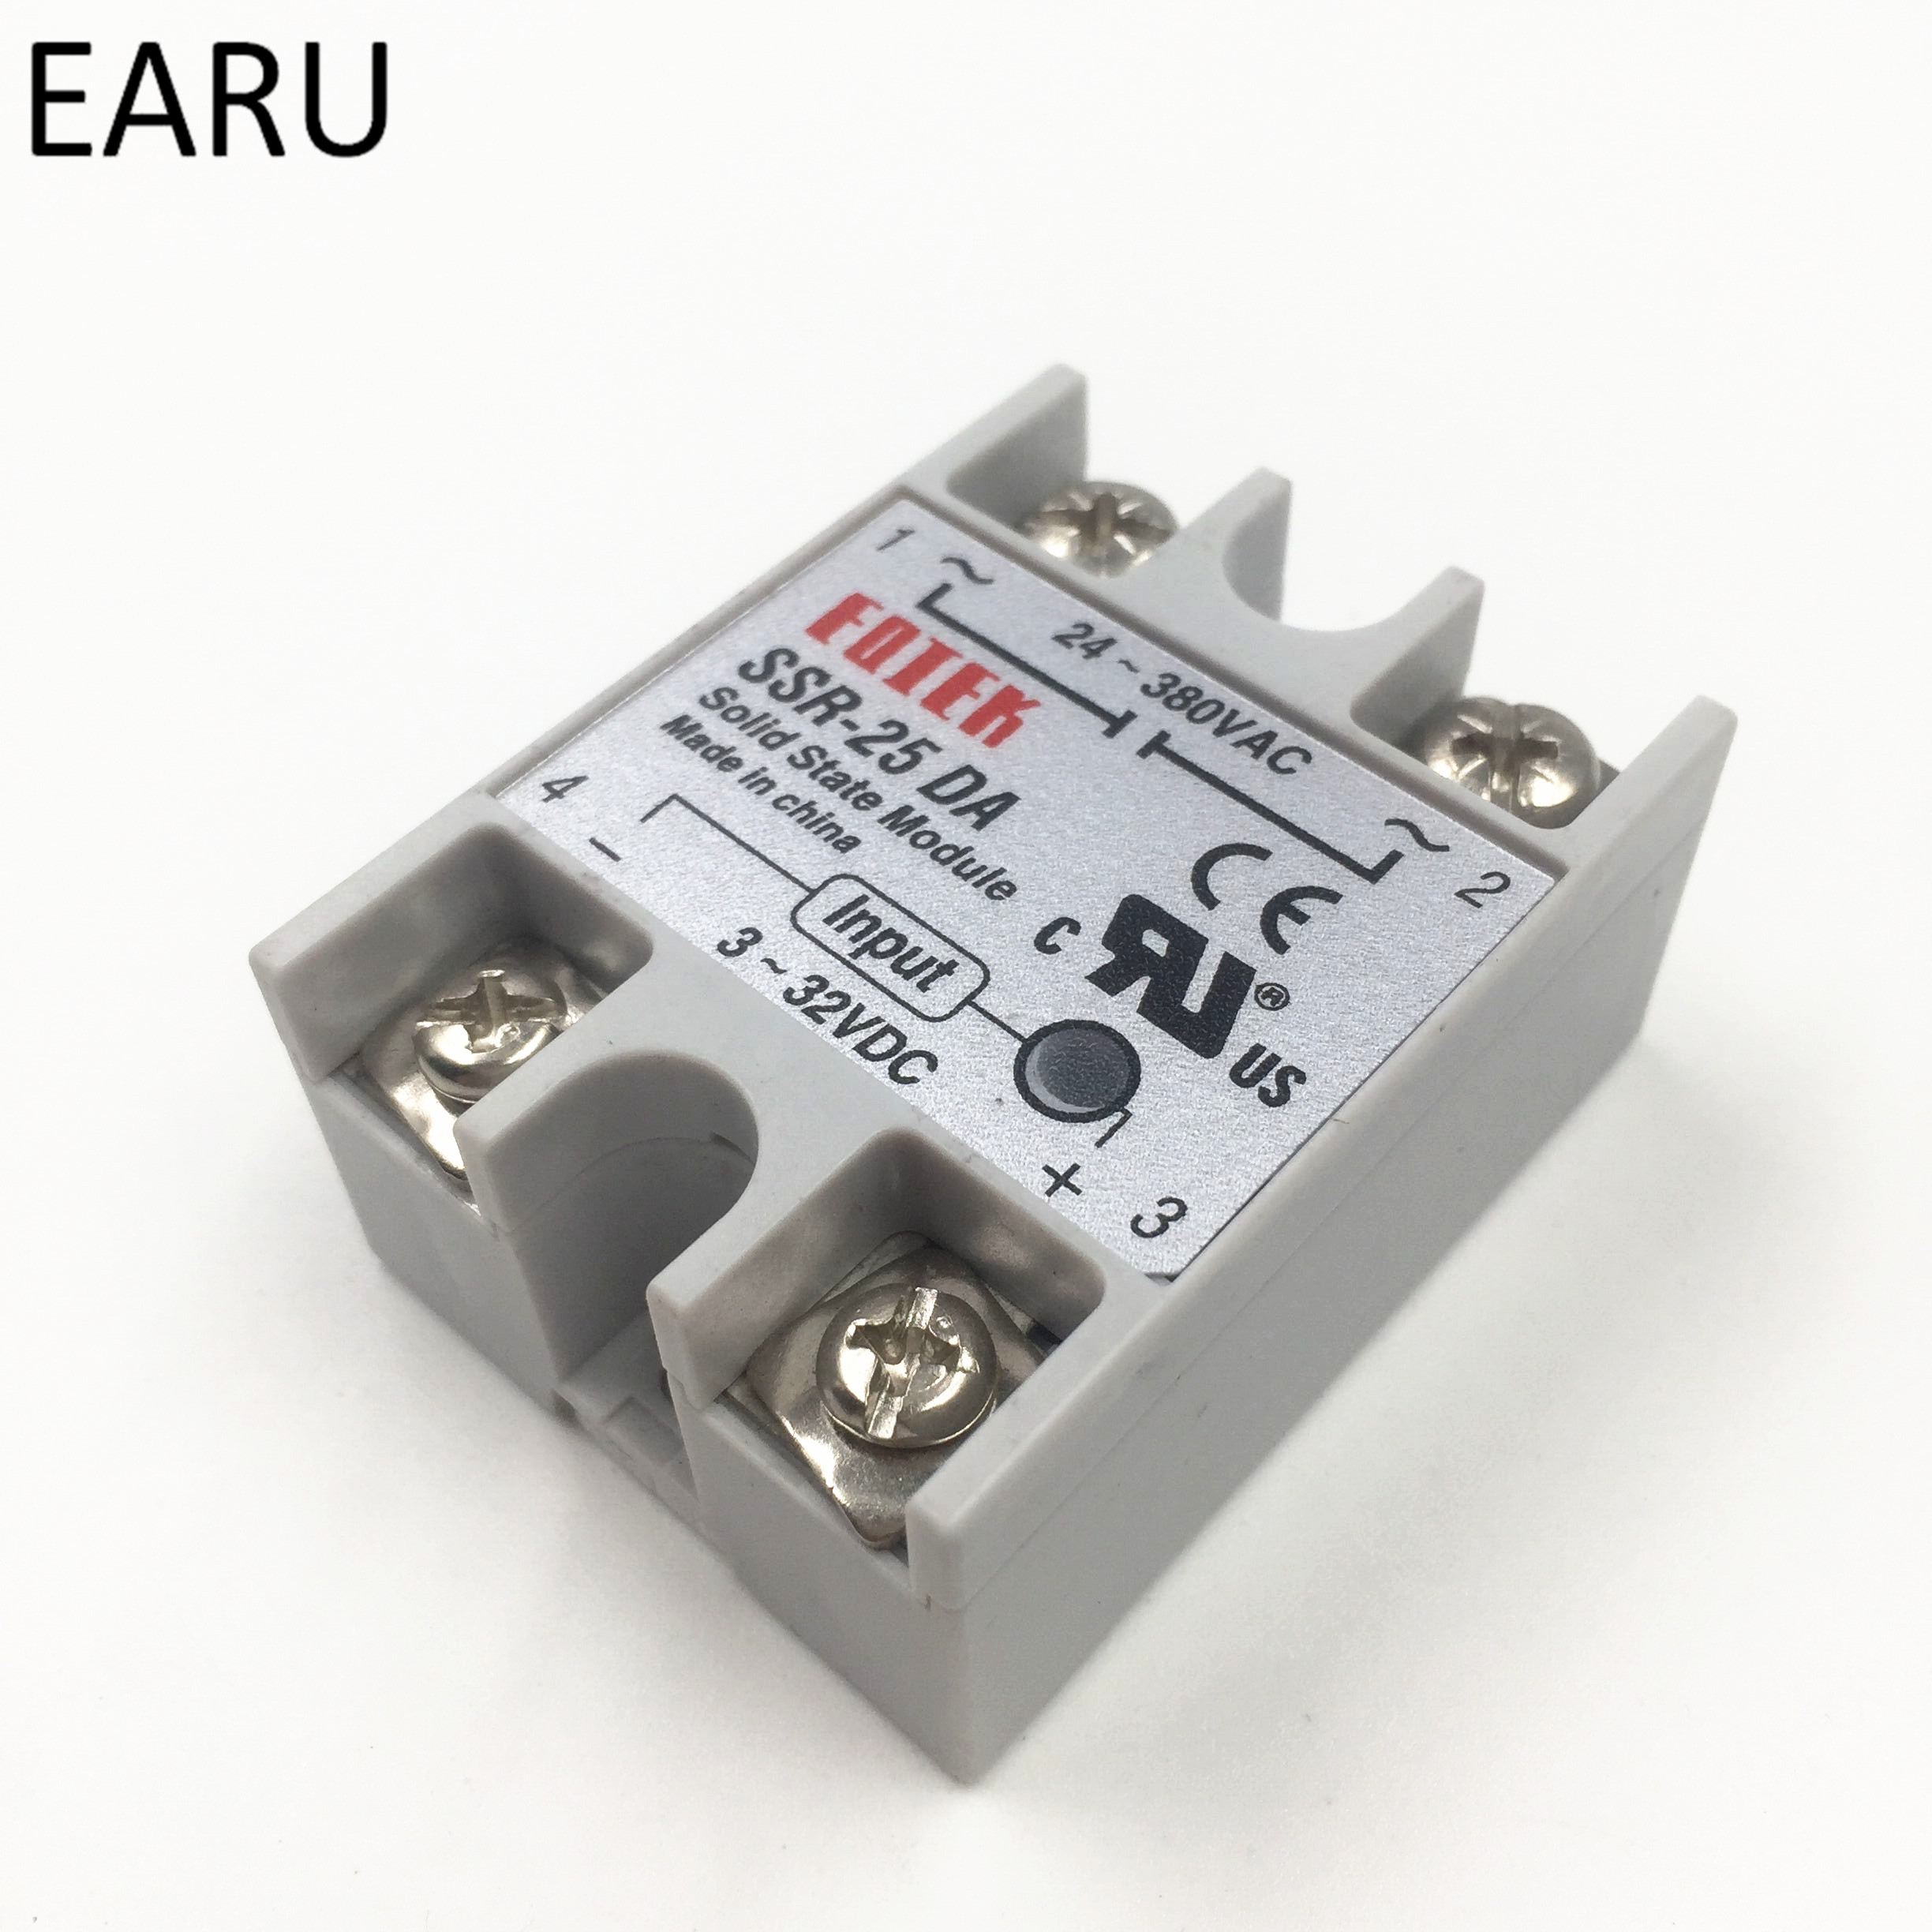 Solid State Relay Module SSR-10DA SSR-25DA SSR-40DA 10A 25A 40A DC 3-32V TO 24-380V AC SSR 10DA 25DA 40DA Voltage Transformer ssr 80aa ac output solid state relays 90 280v ac to 24 480v ac single phase solid relay module rele 12v 80a ks1 80aa